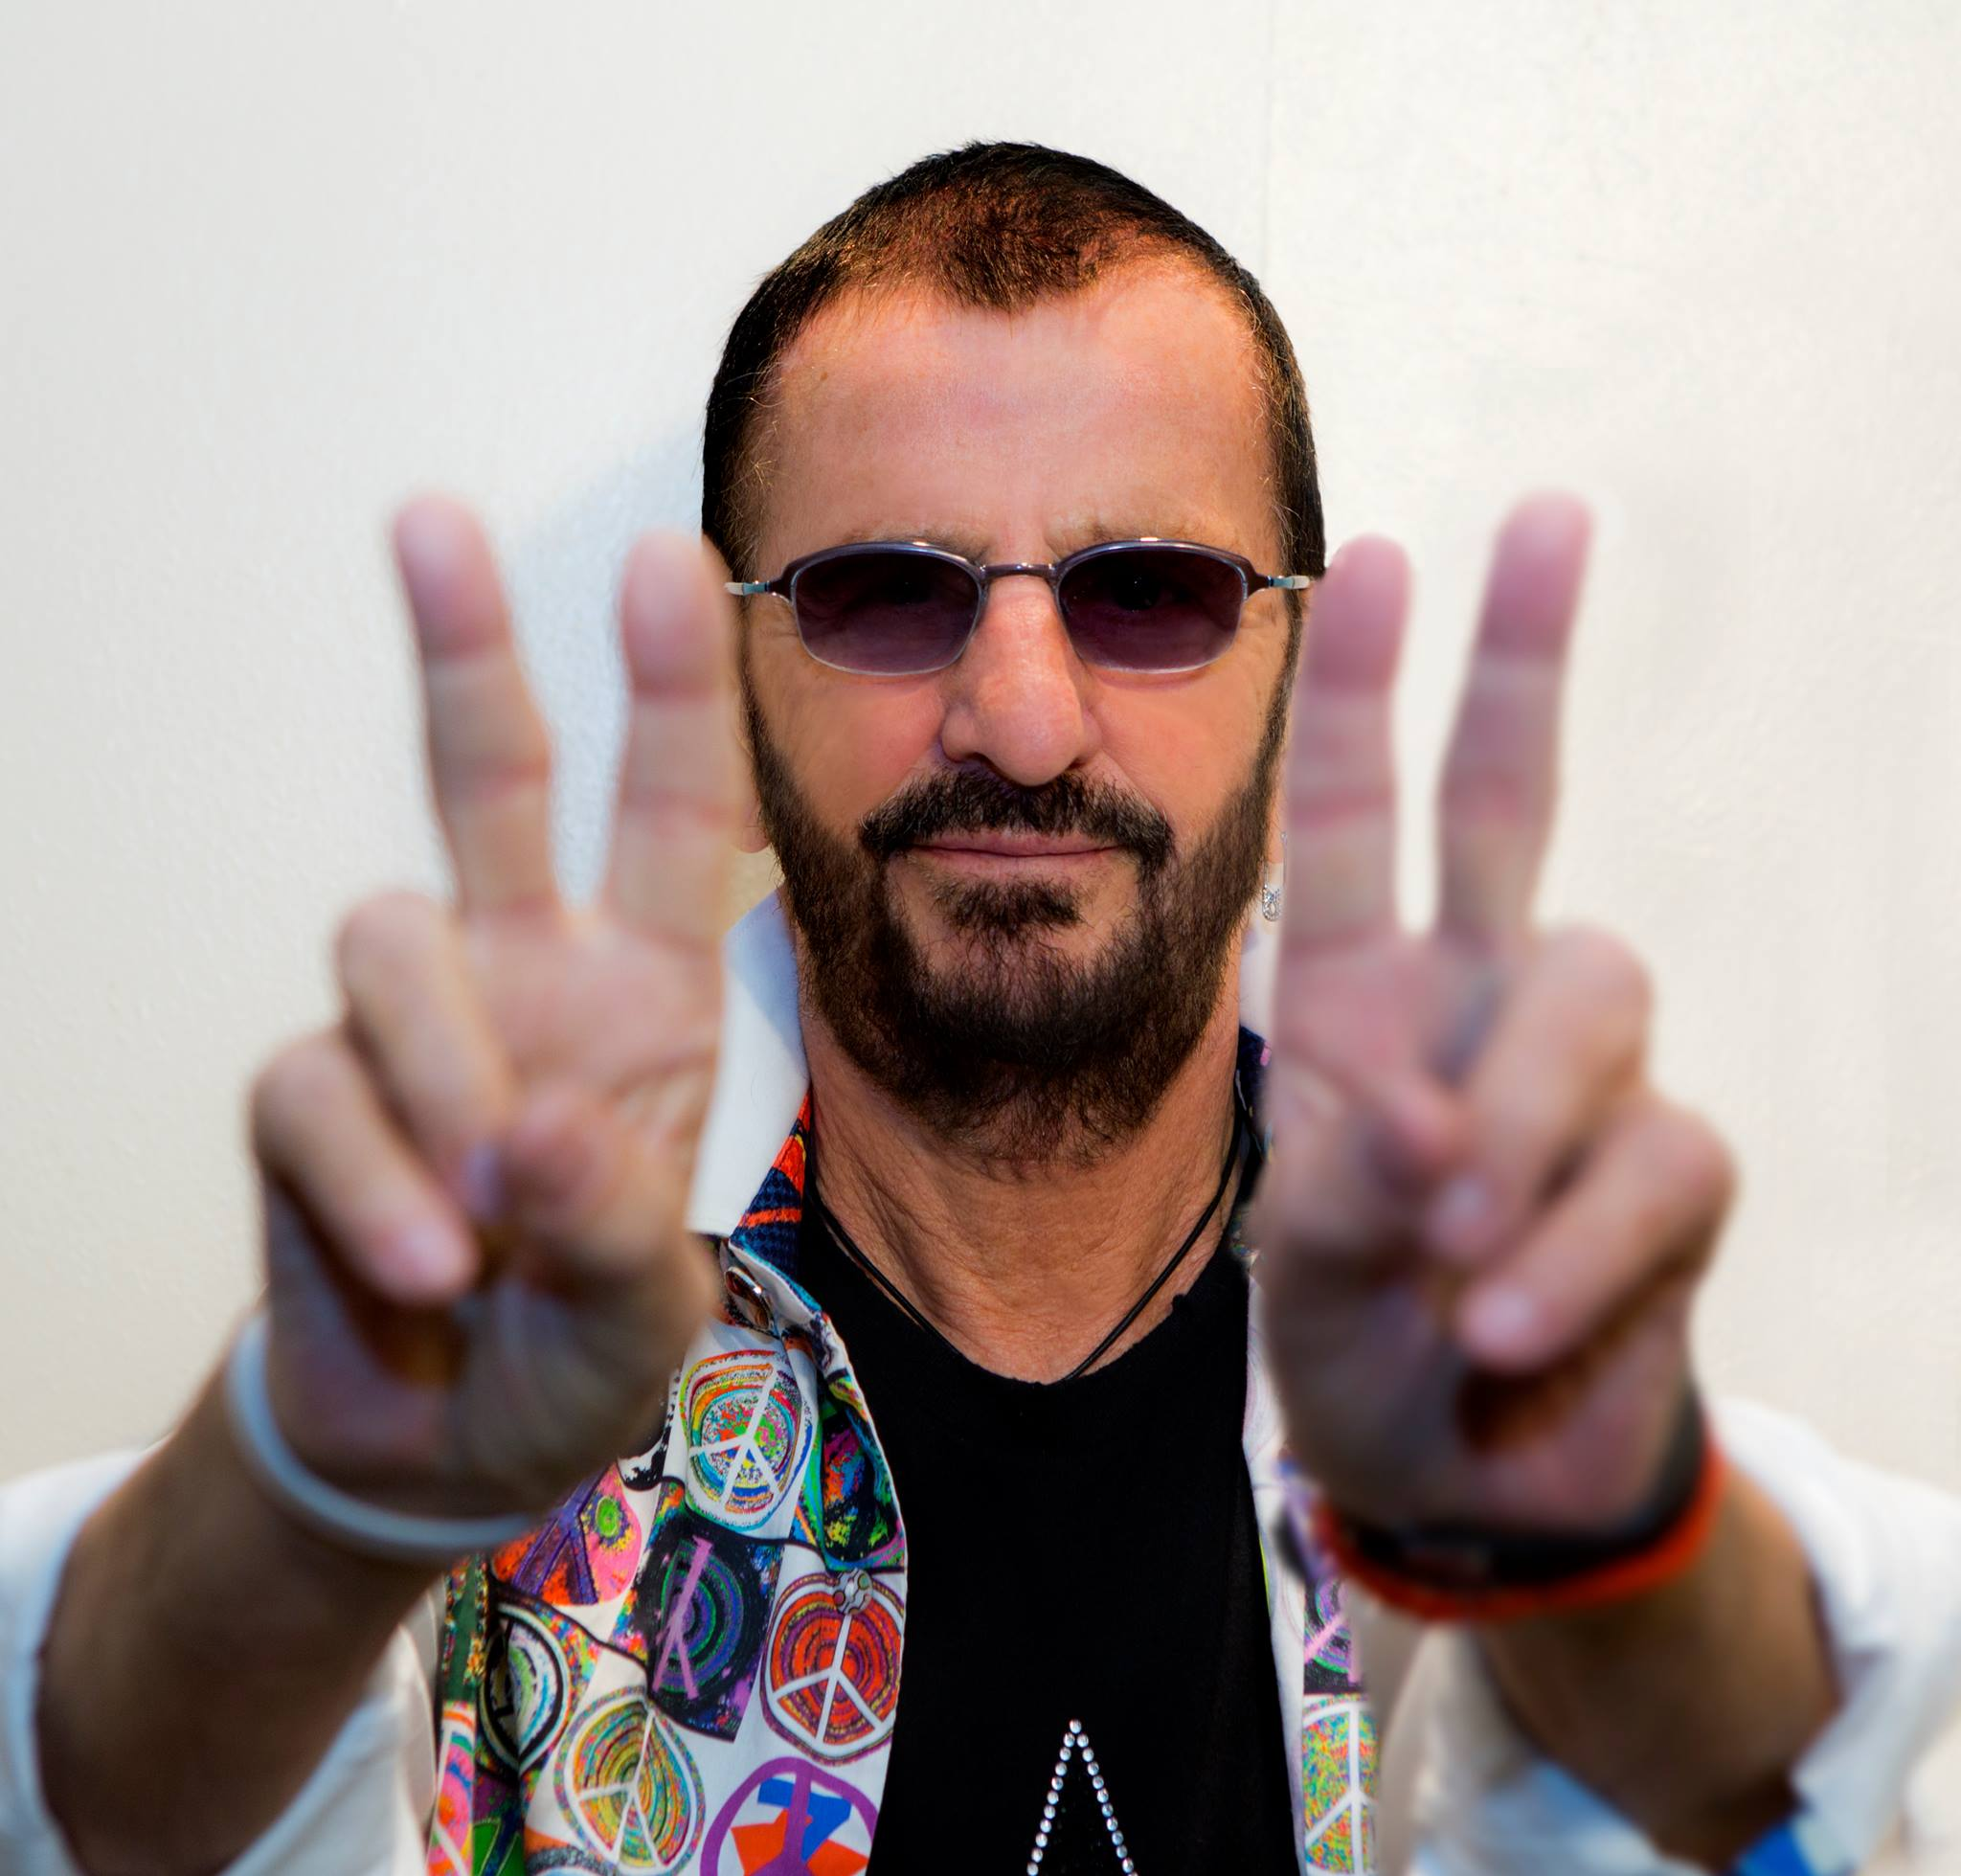 Soon Itll Be Sir Ringo 53 Years After Receiving An MBE In 1965 With His Fellow Beatles Starr Has Been Selected To Knighted